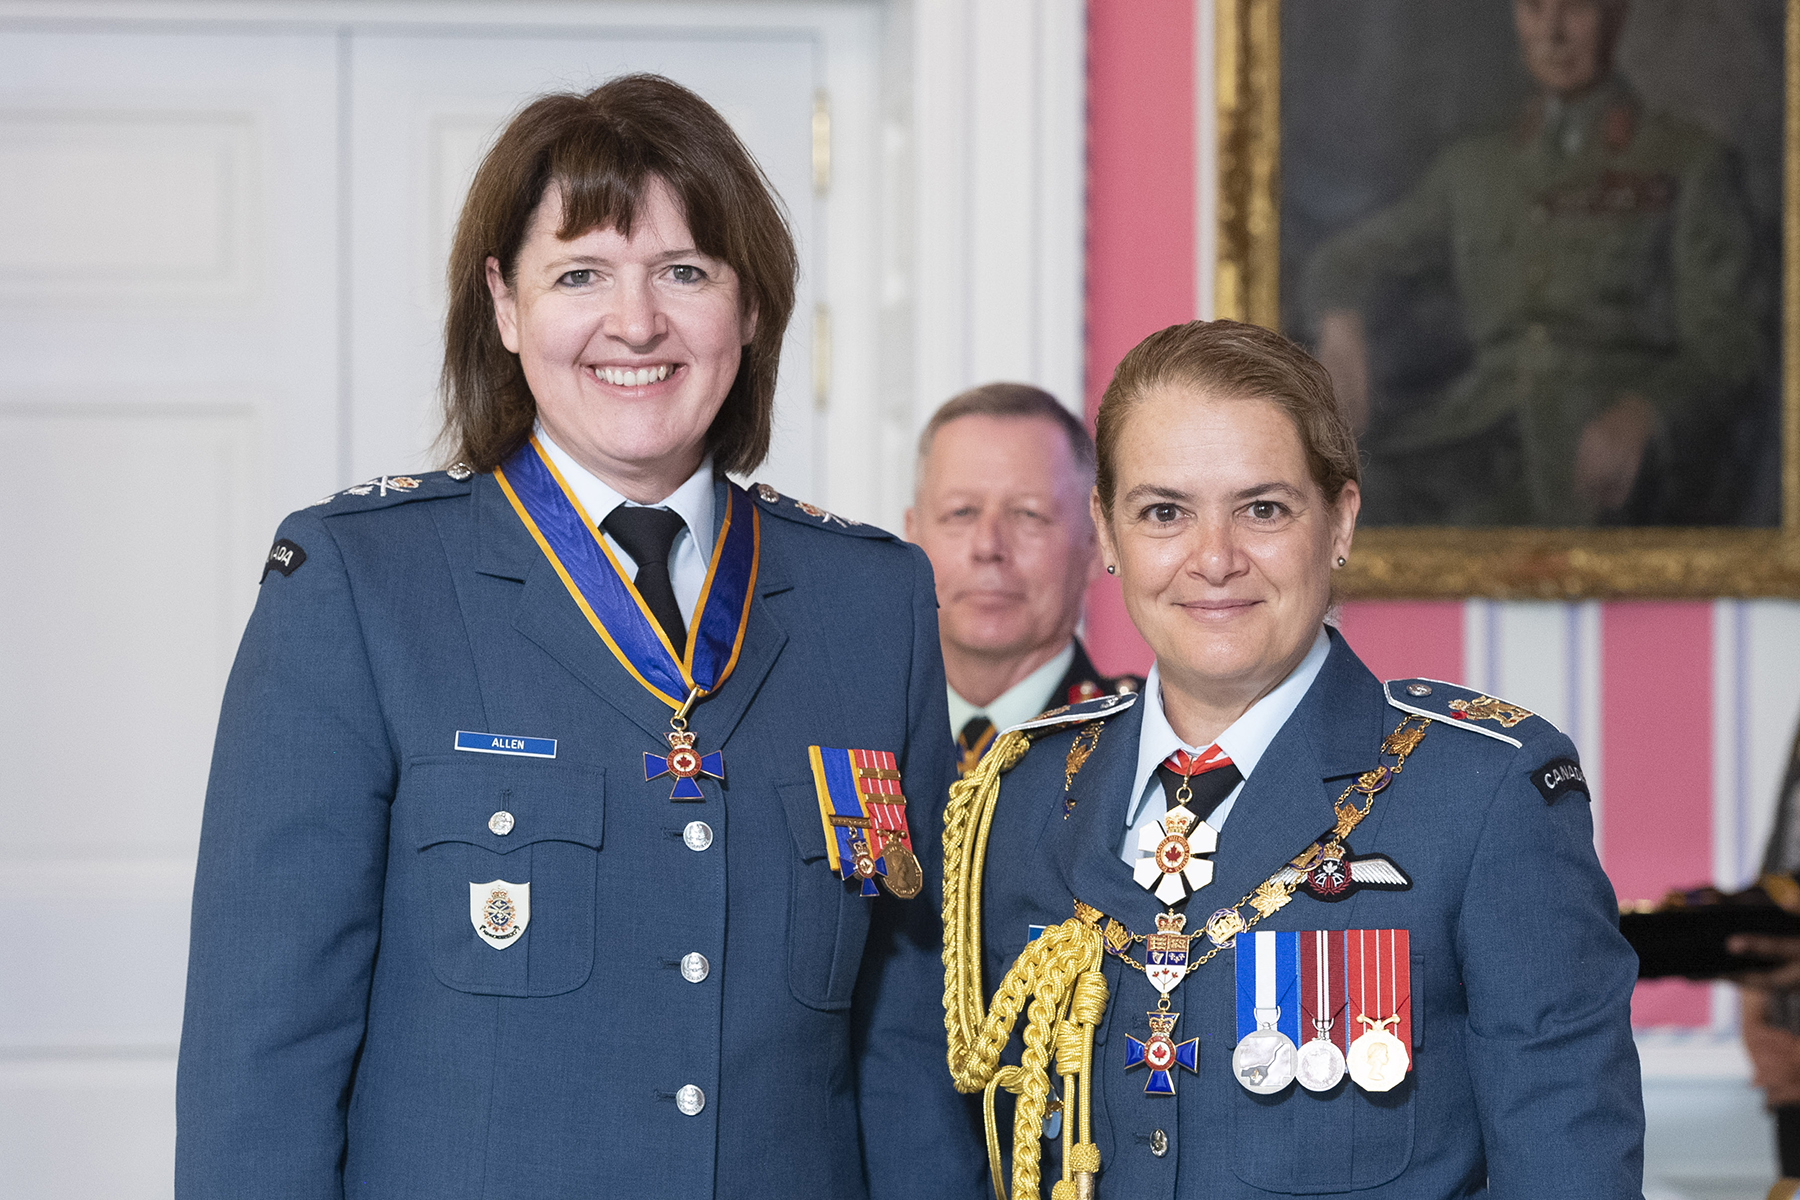 Major-General Frances Jennifer Allen, C.M.M., C.D. (left) stands with Governor General and Commander-in-Chief of Canada Julie Payette after receiving the C.M.M. insignia from the Governor General during a May 27, 2019, presentation ceremony at Rideau Hall in Ottawa, Ontario. PHOTO: Sergeant Johanie Maheu, Rideau Hall, © OSGG, GG05-2019-0118-010